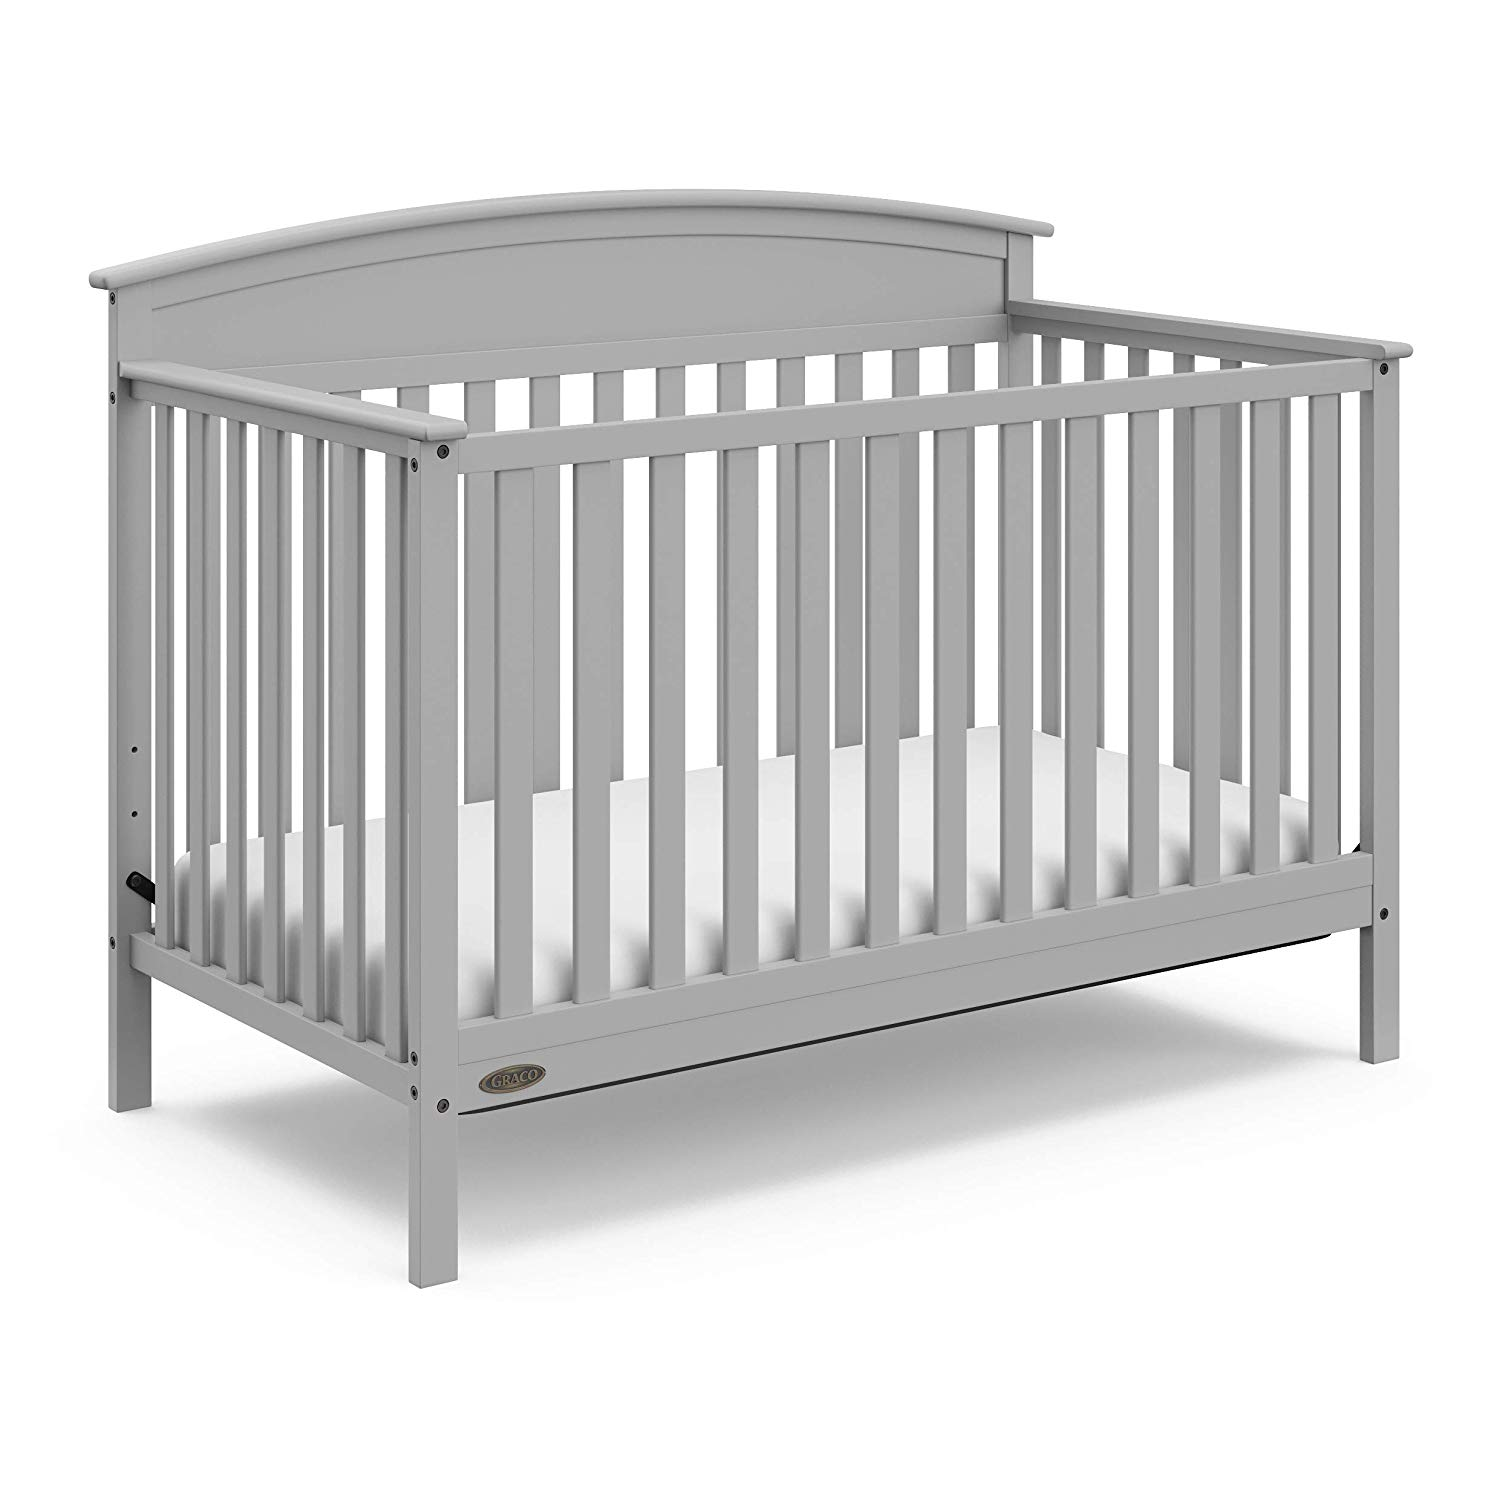 Graco Benton Convertible Crib, Best Cribs for Twins